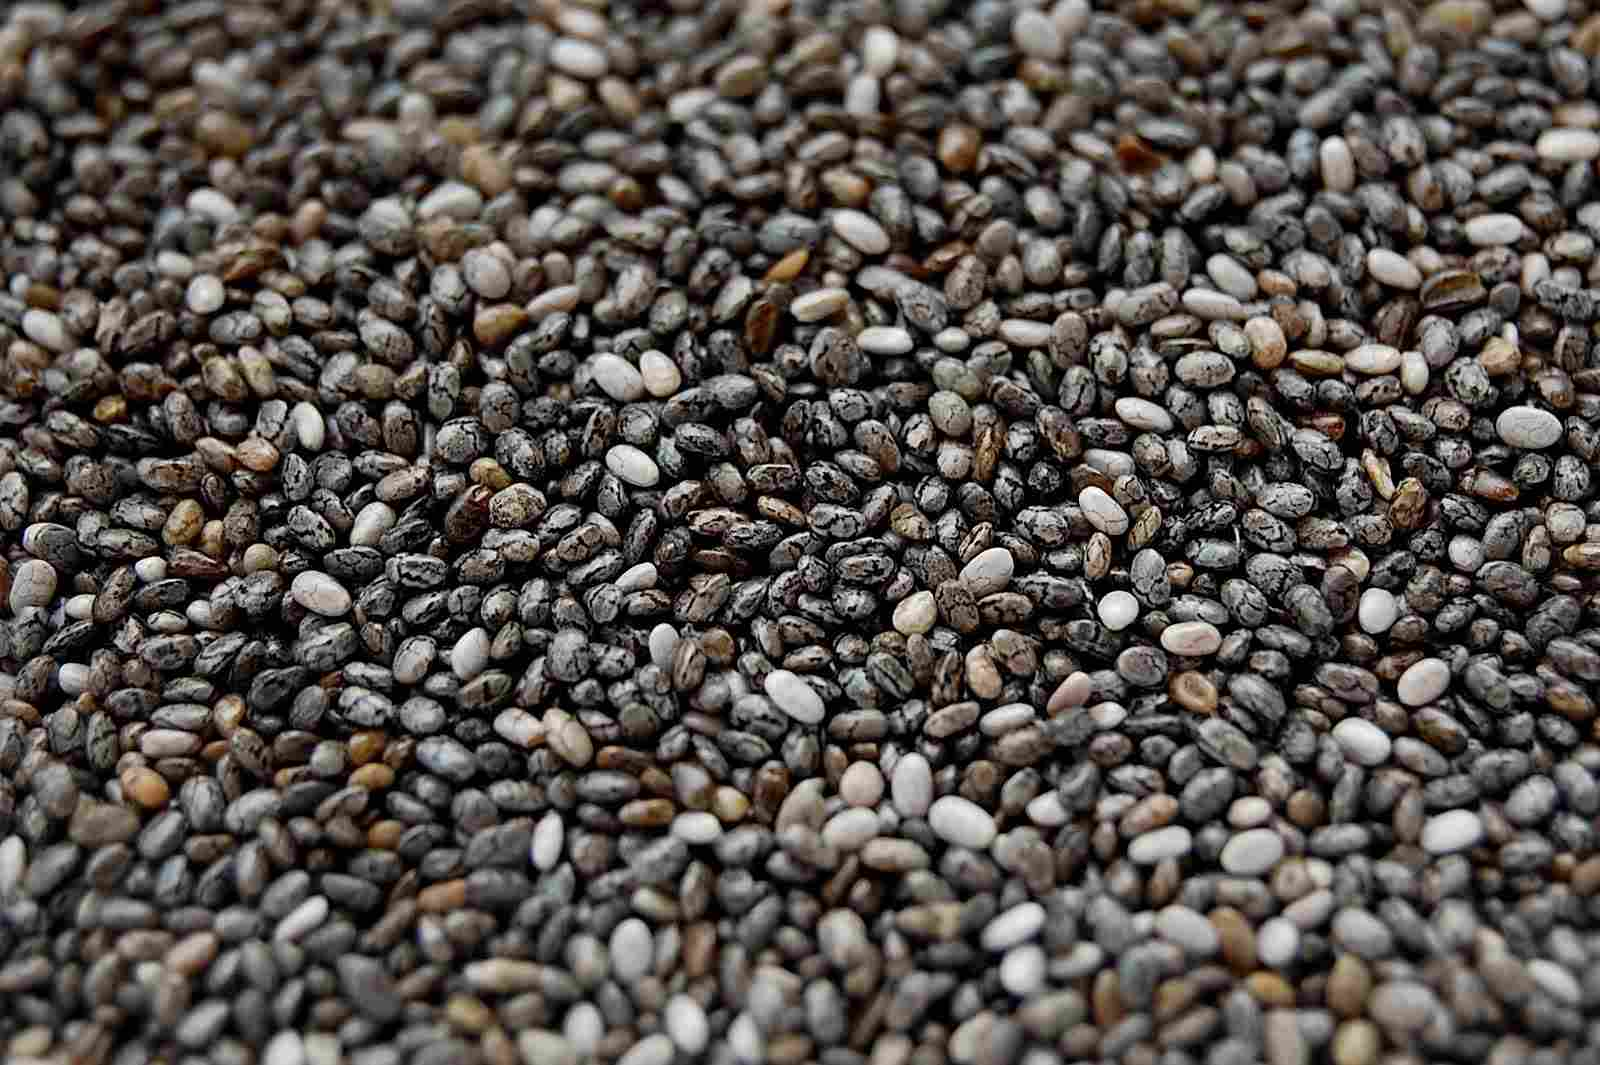 first you need chia seeds they sale them in food store  also you dont need to use them but they help u loose weight and get viatmin in you  and also get you fuller fast